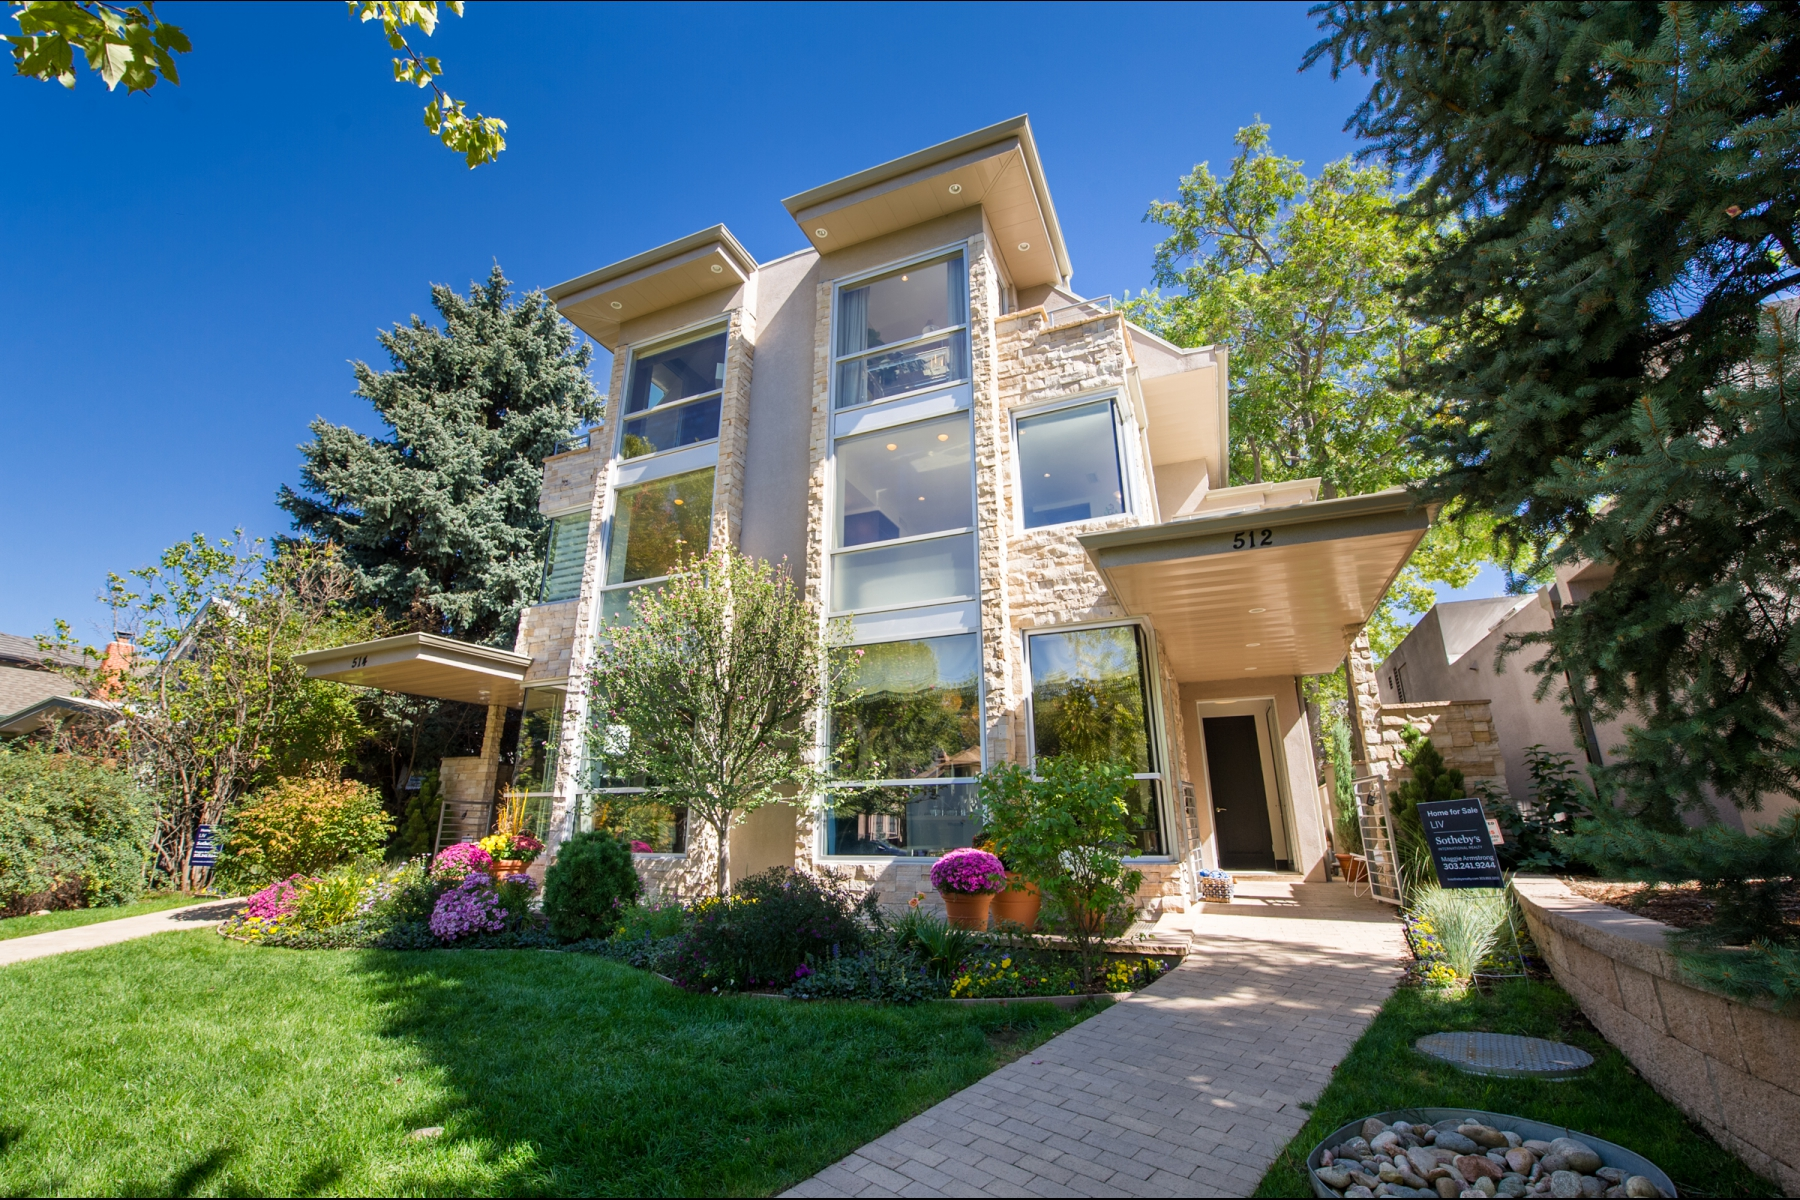 Townhouse for Sale at 2015 Denver Designer Showhouse Home 514 Cook Street Cherry Creek, Denver, Colorado 80206 United States